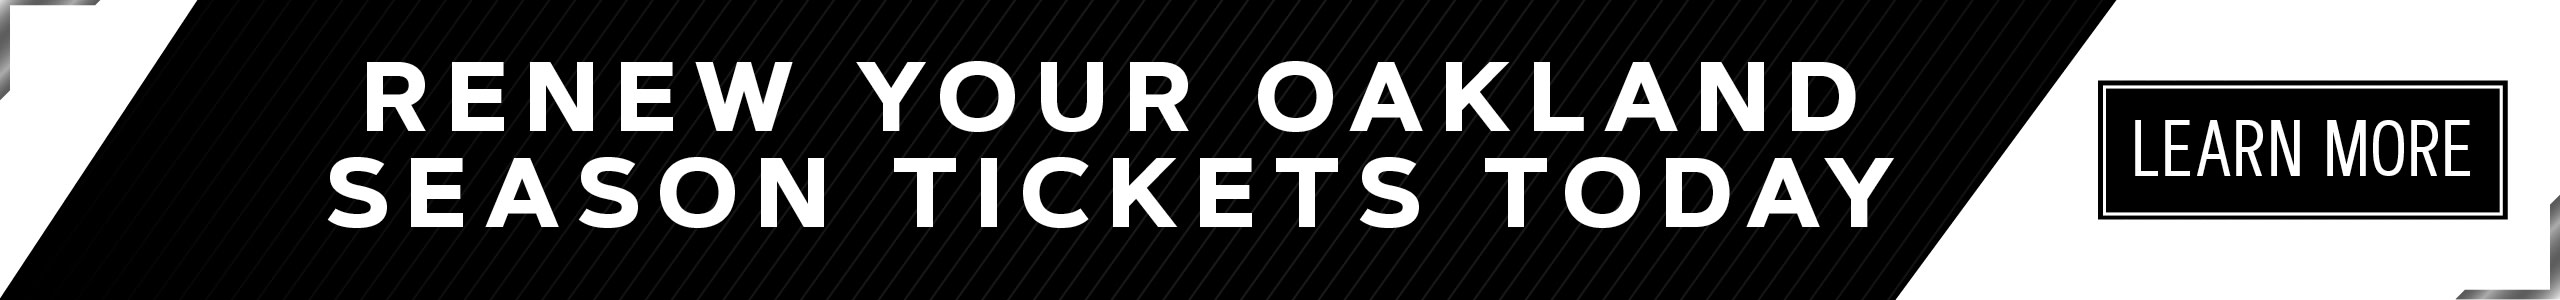 Renew your Oakland Season Tickets today